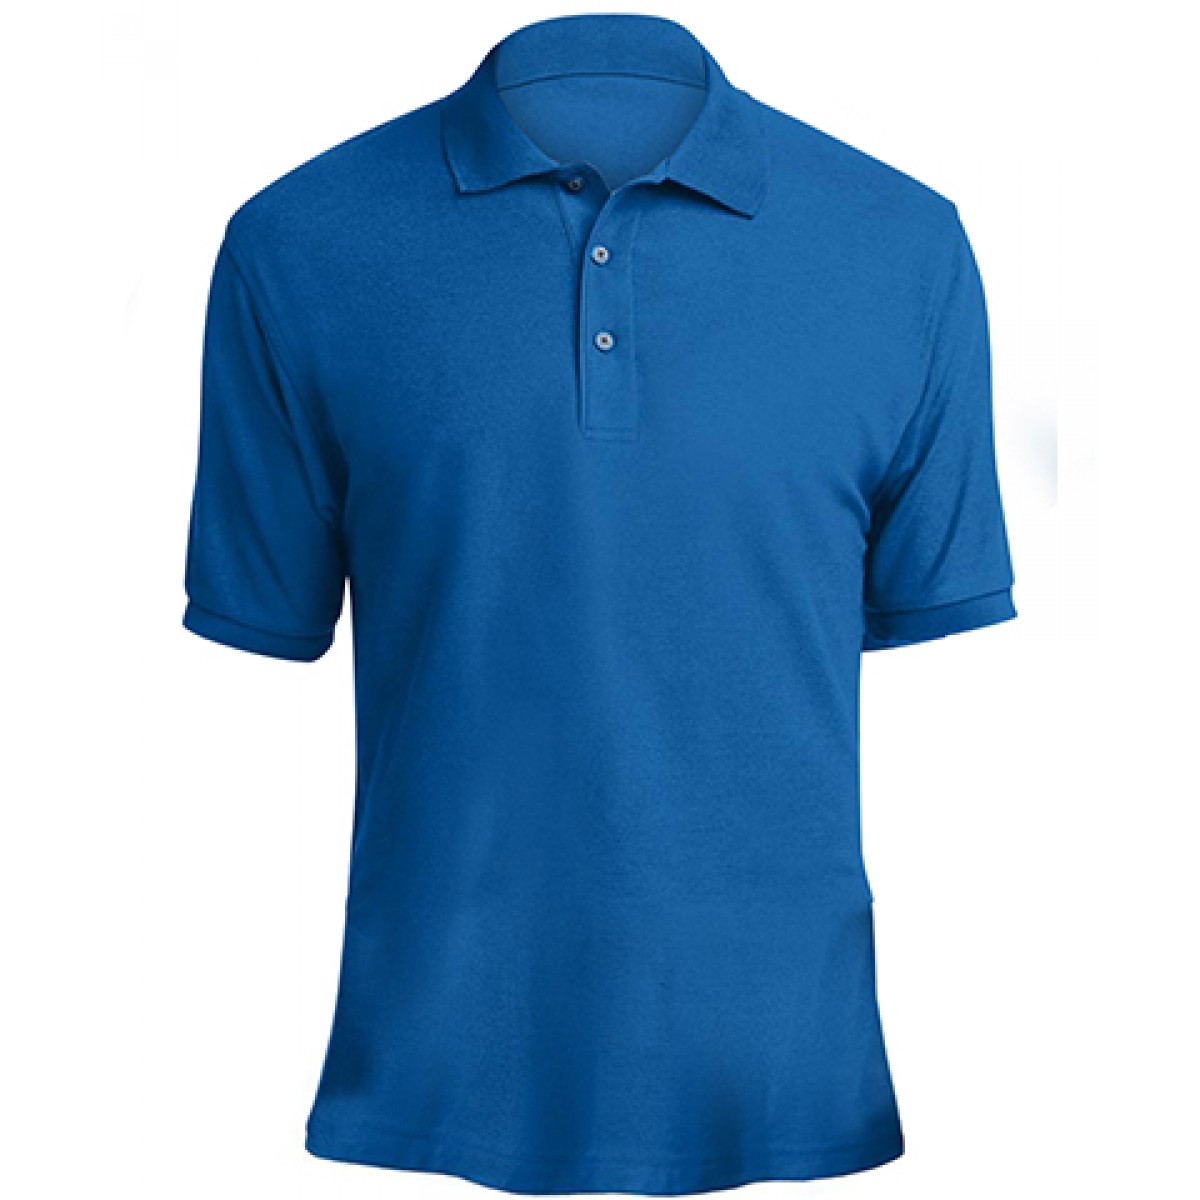 Womens Classic Polo -Royal Blue-M